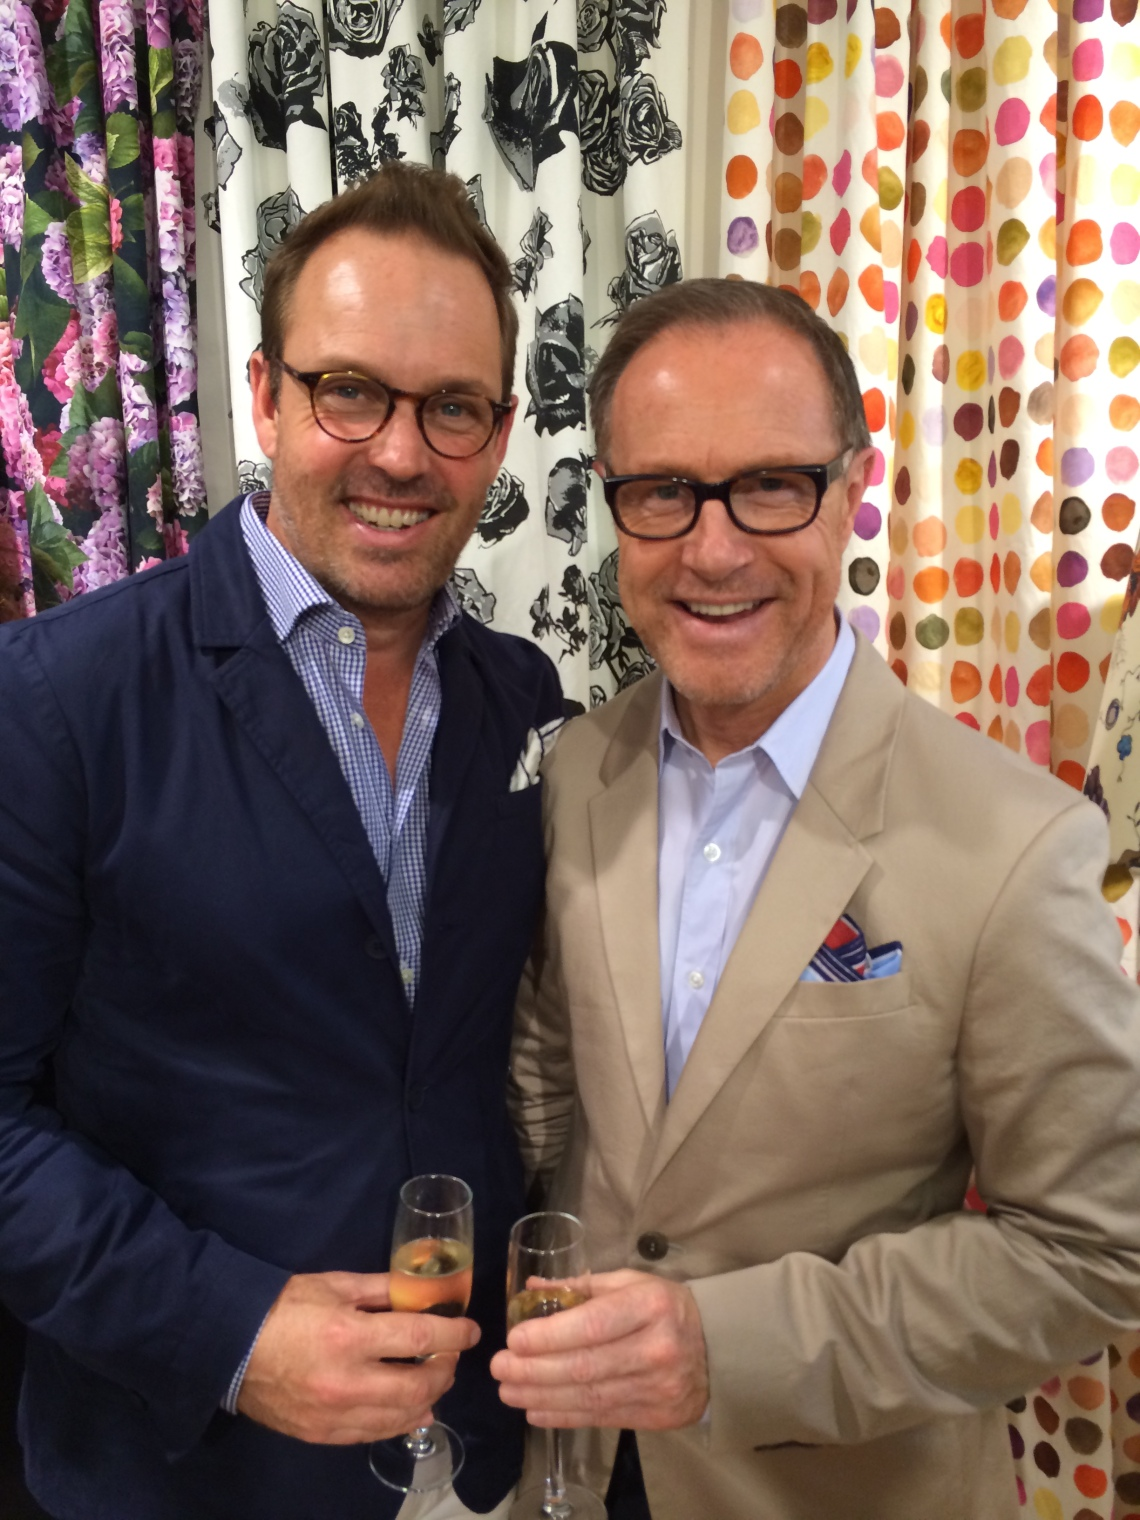 Brent with Craig Markham - Firmdale Hotels